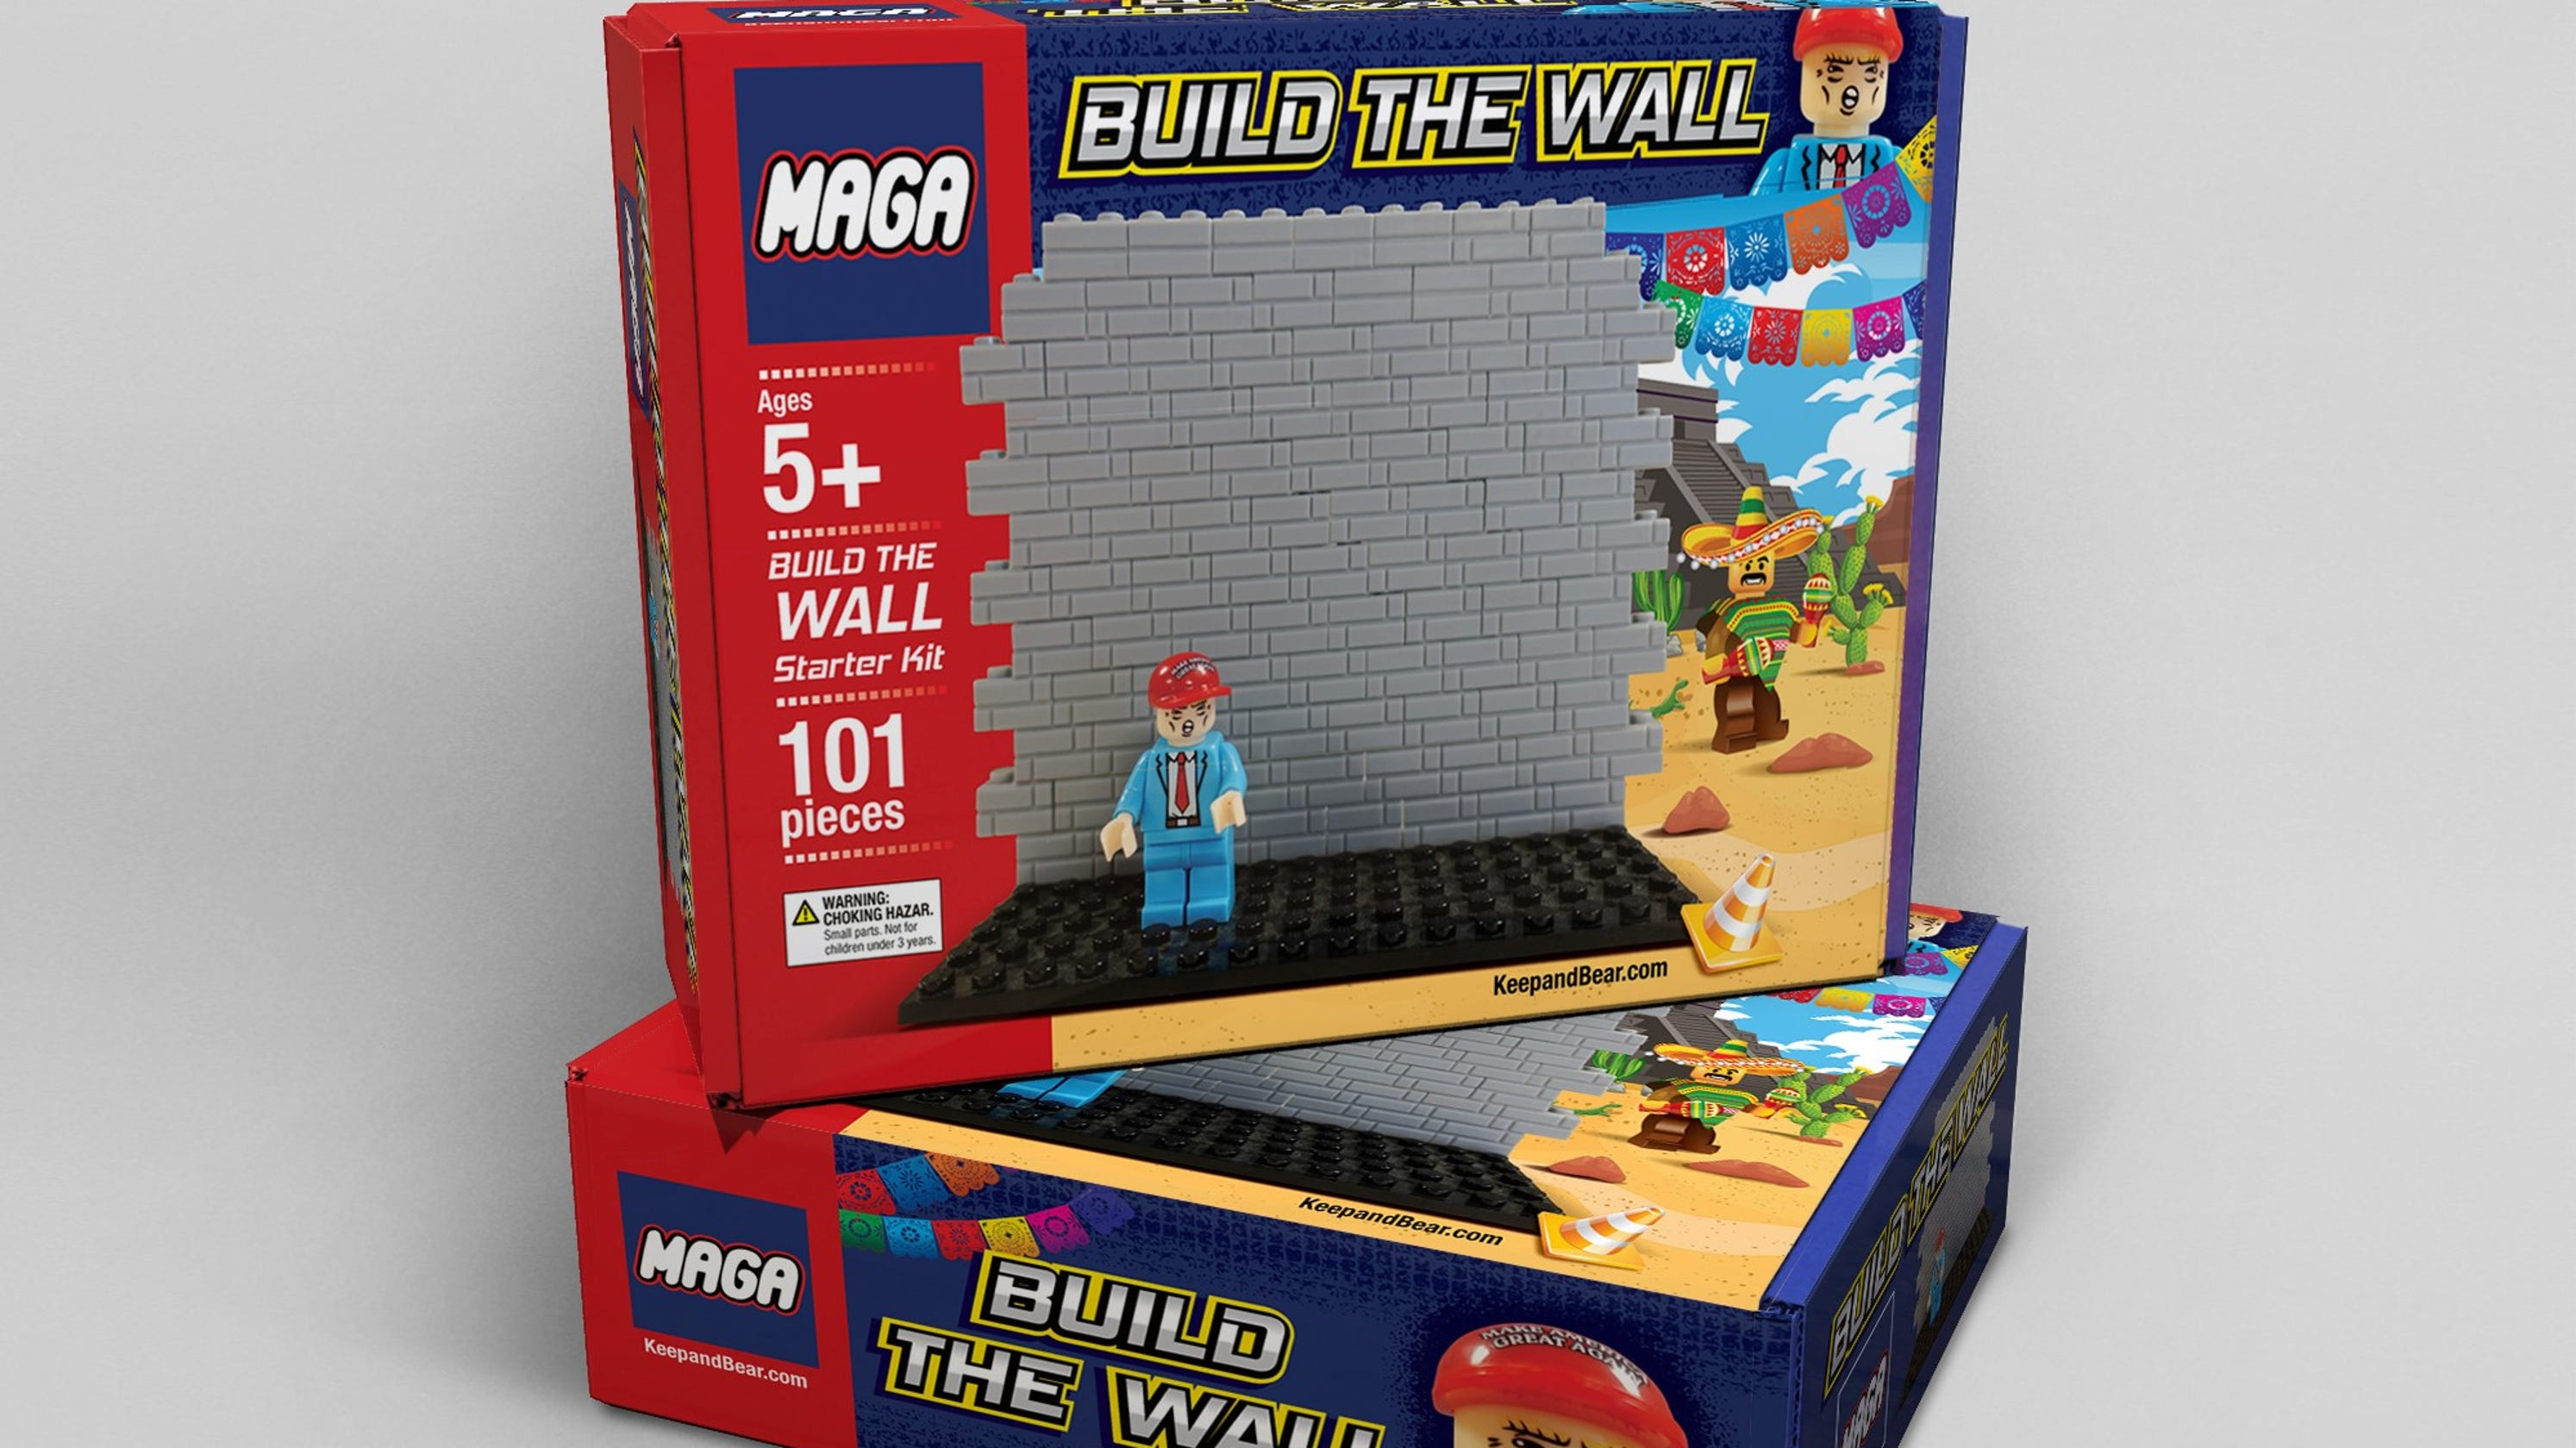 MAGA 'Build the Wall' starter kit and other Trump-themed holiday gifts